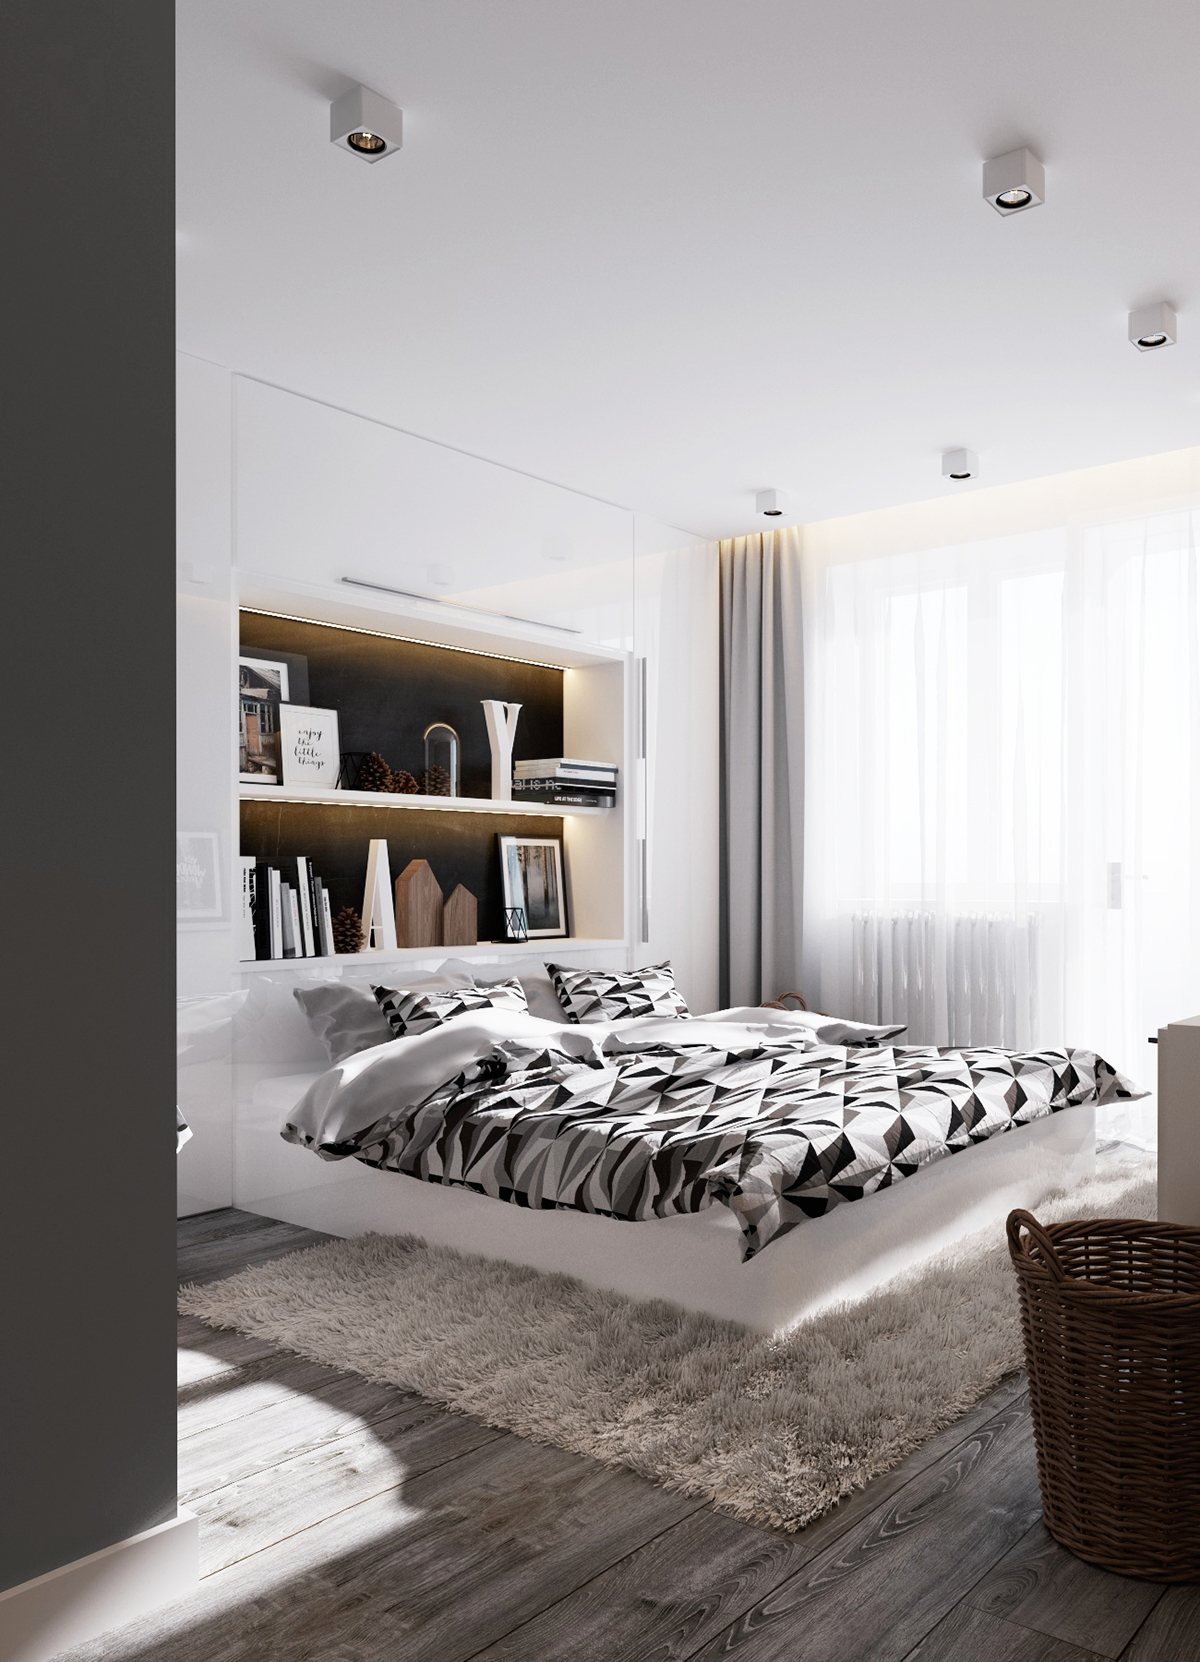 Black And White Artwork For Bedroom 6 Creative Bedrooms With Artwork And Diverse Textures